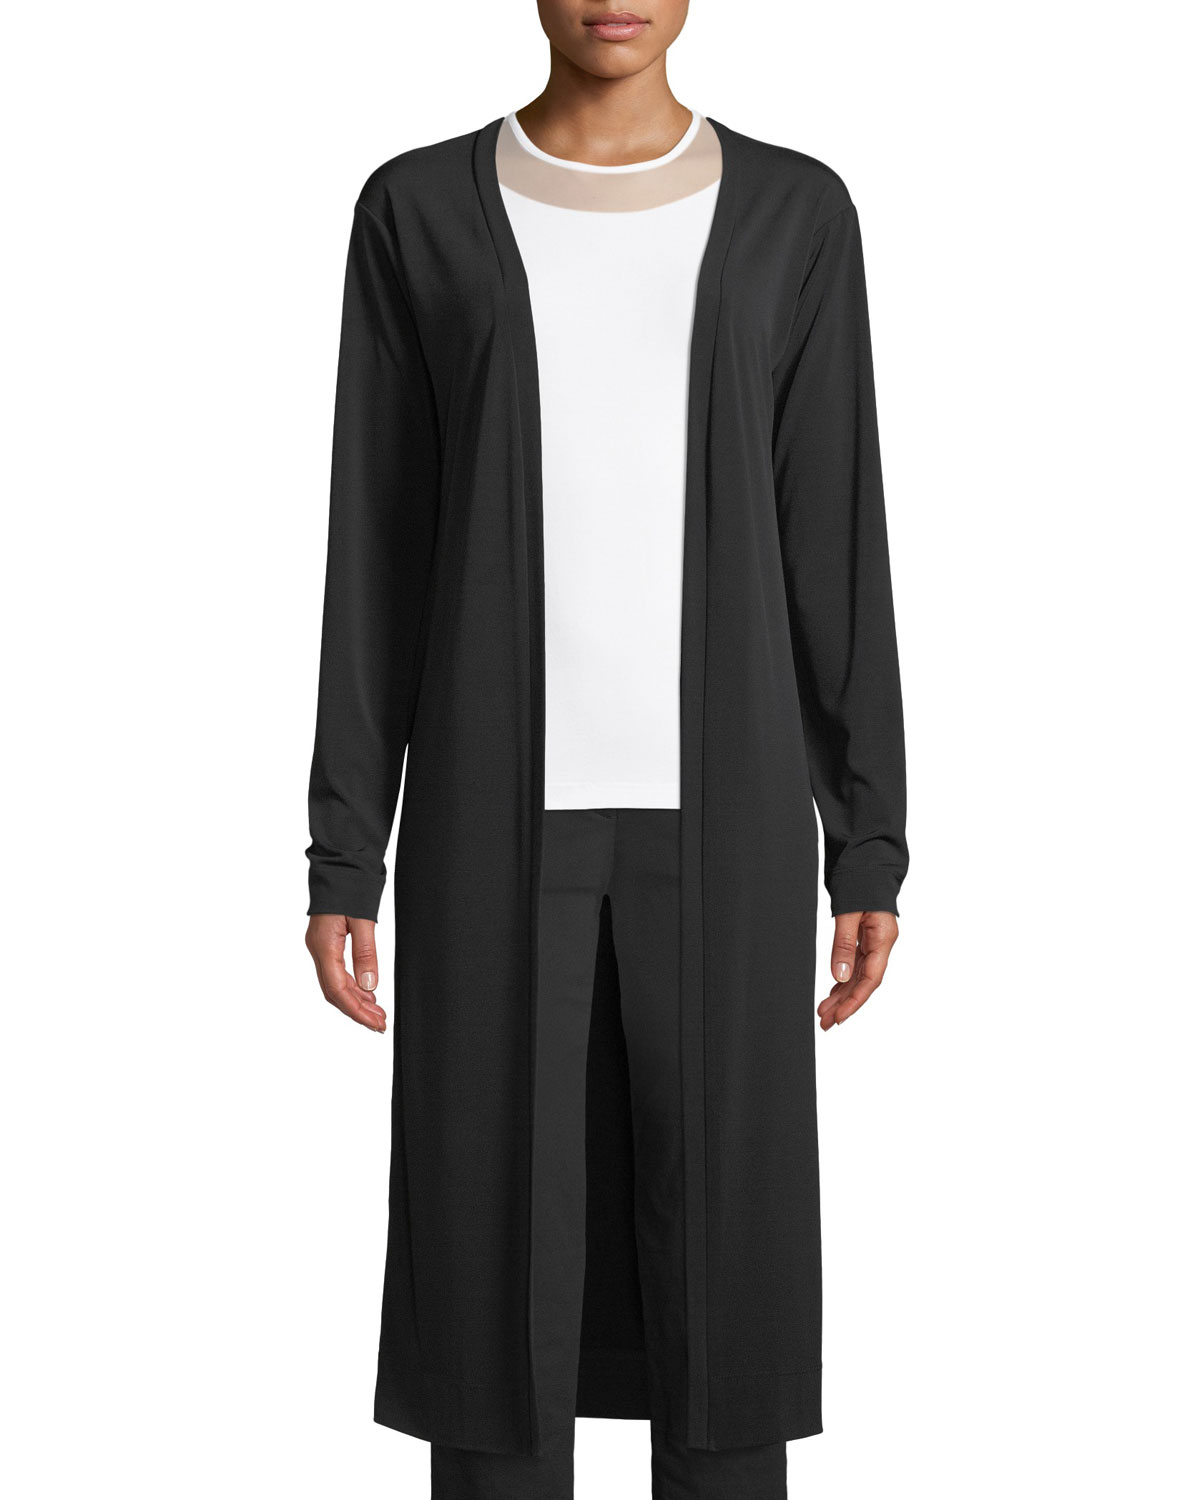 ANATOMIE Luciana Jersey Long Cardigan W/ Side Zippers in Black